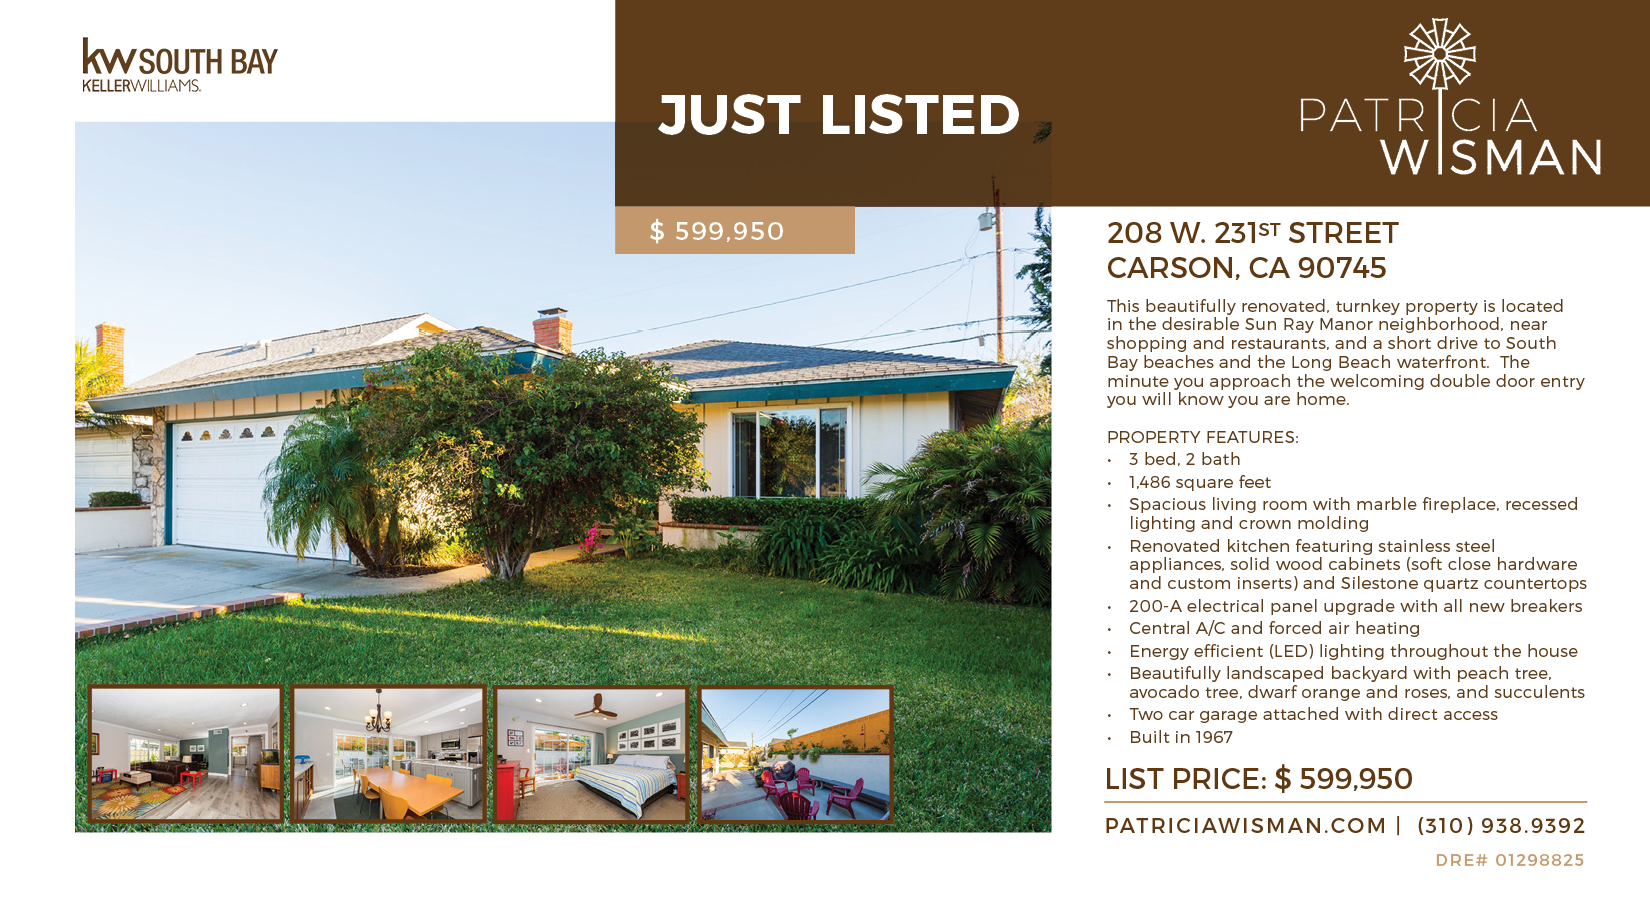 JUST LISTED! 208 W. 231st St., Carson